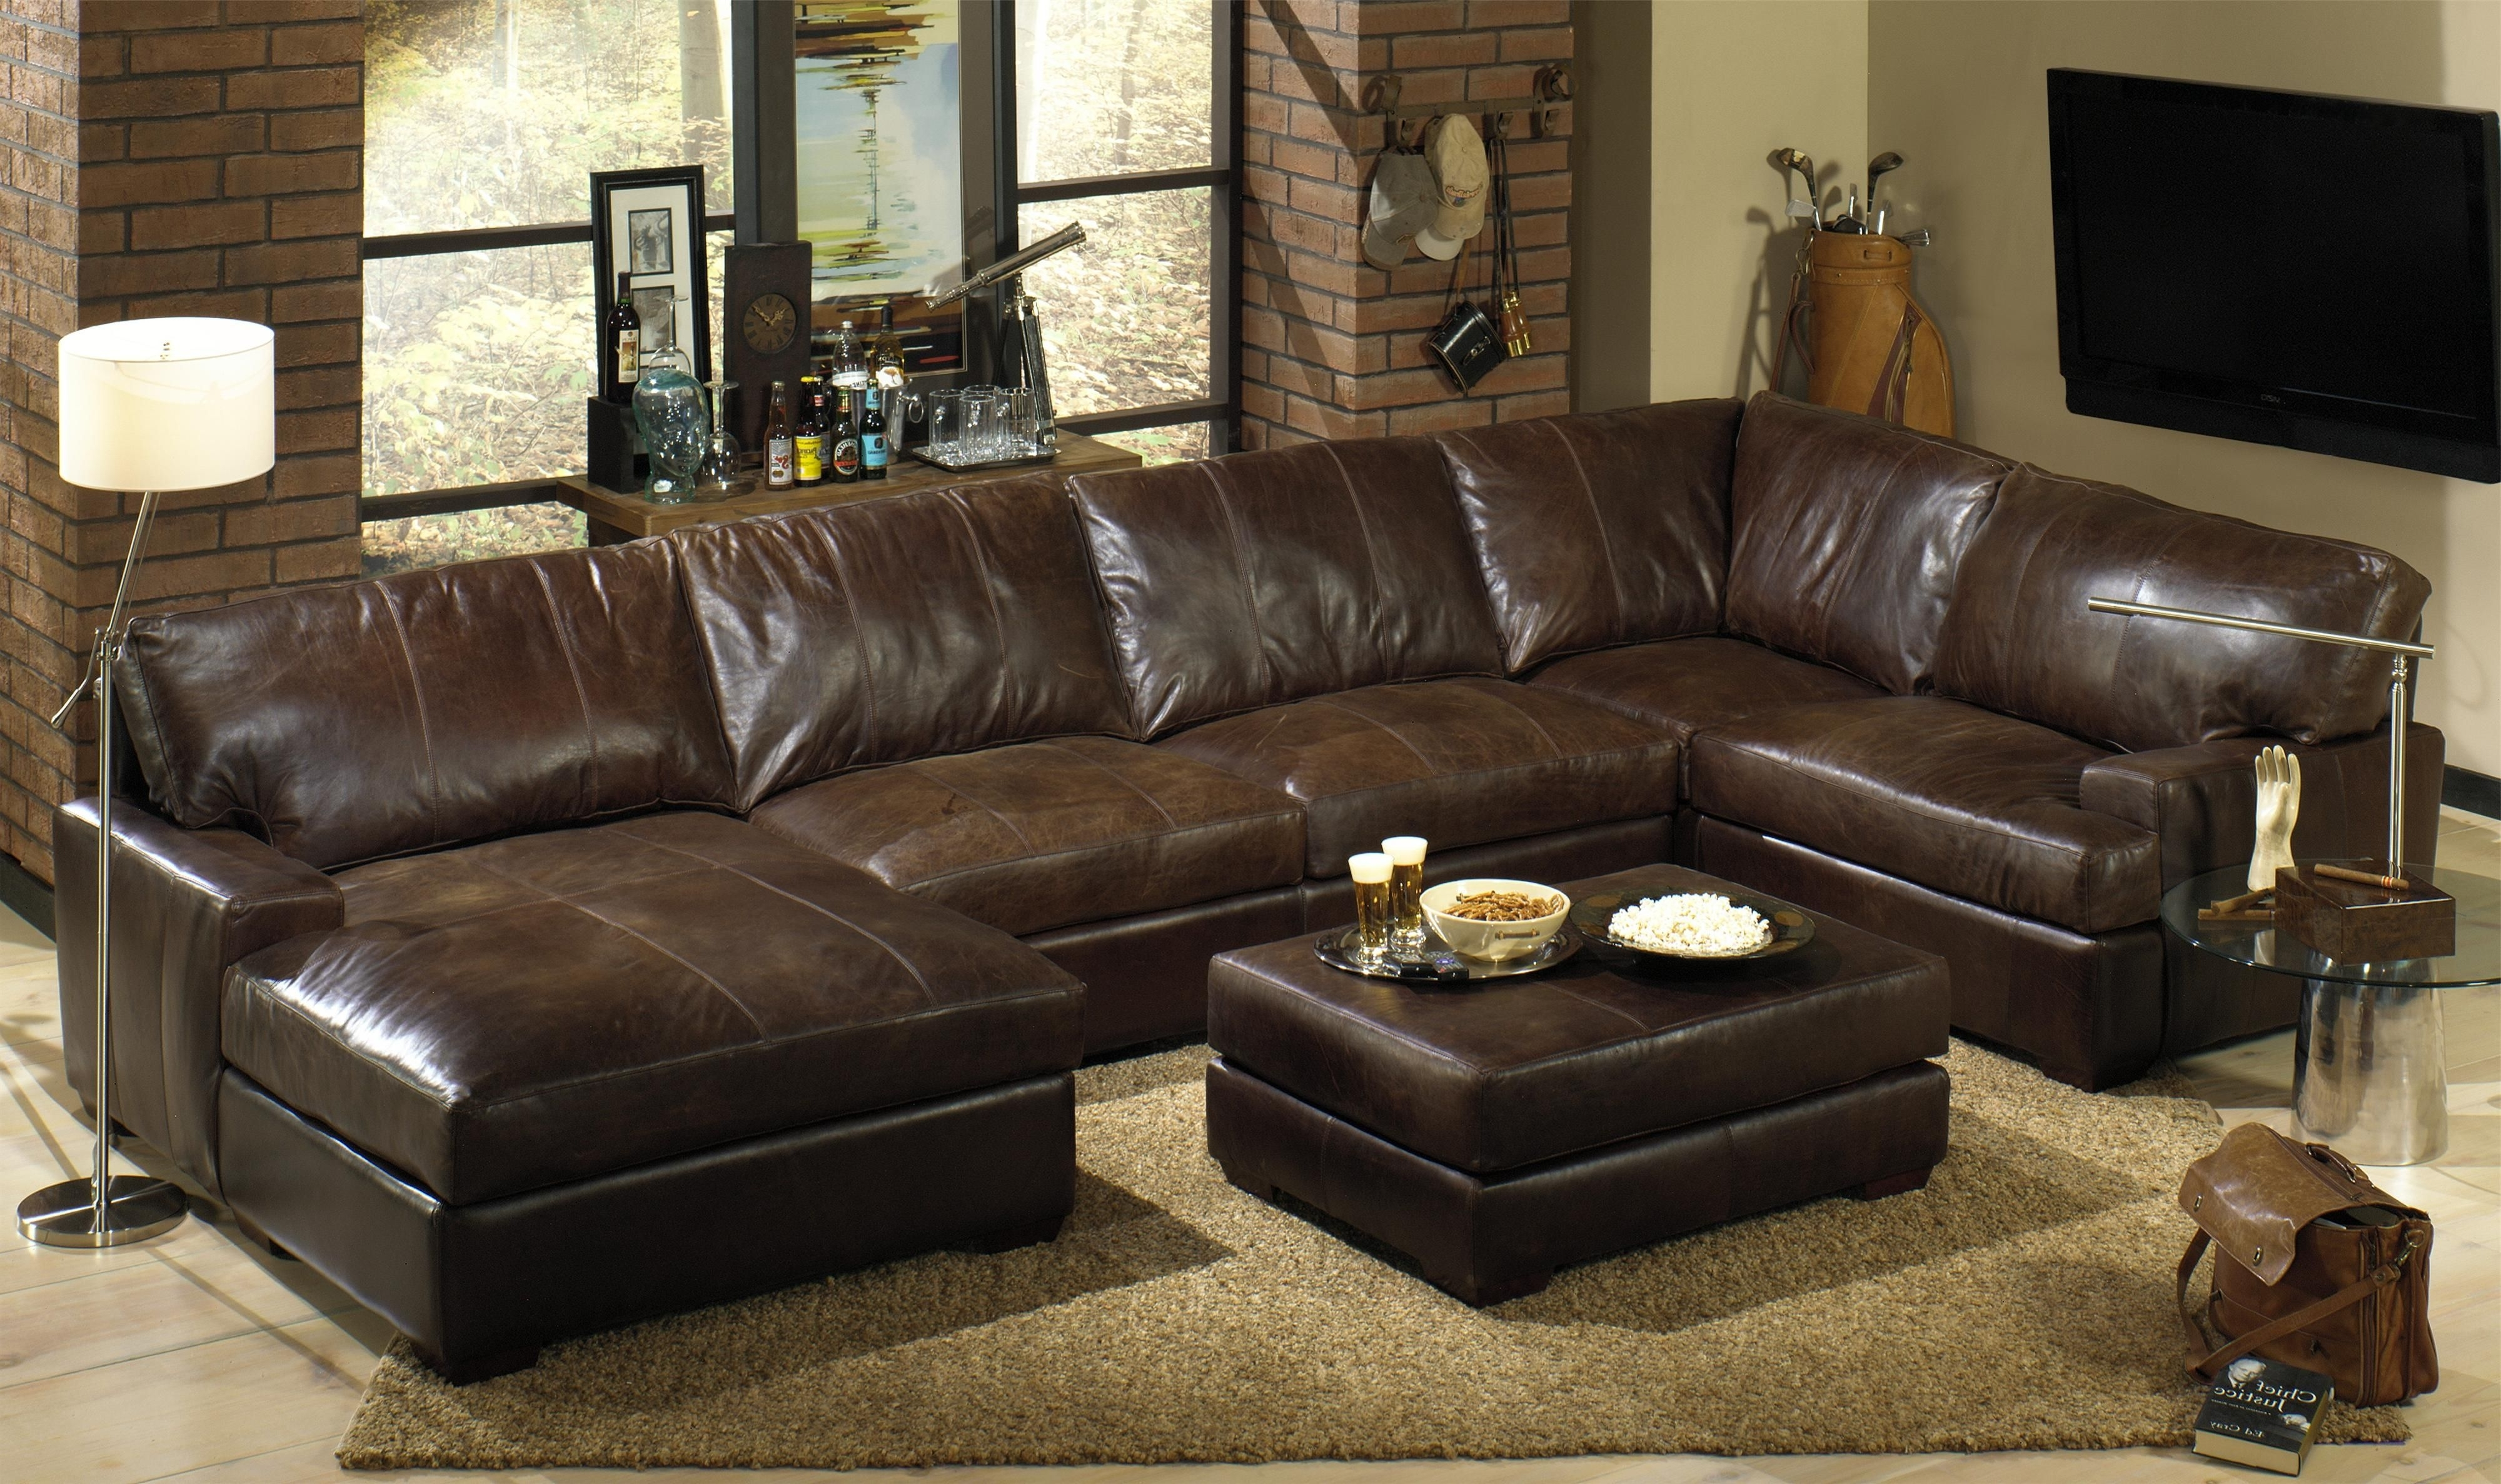 Comfortable Sectional Couches For Versatile Home Furniture Ideas In Fashionable Sofas With Chaise And Ottoman (View 18 of 20)